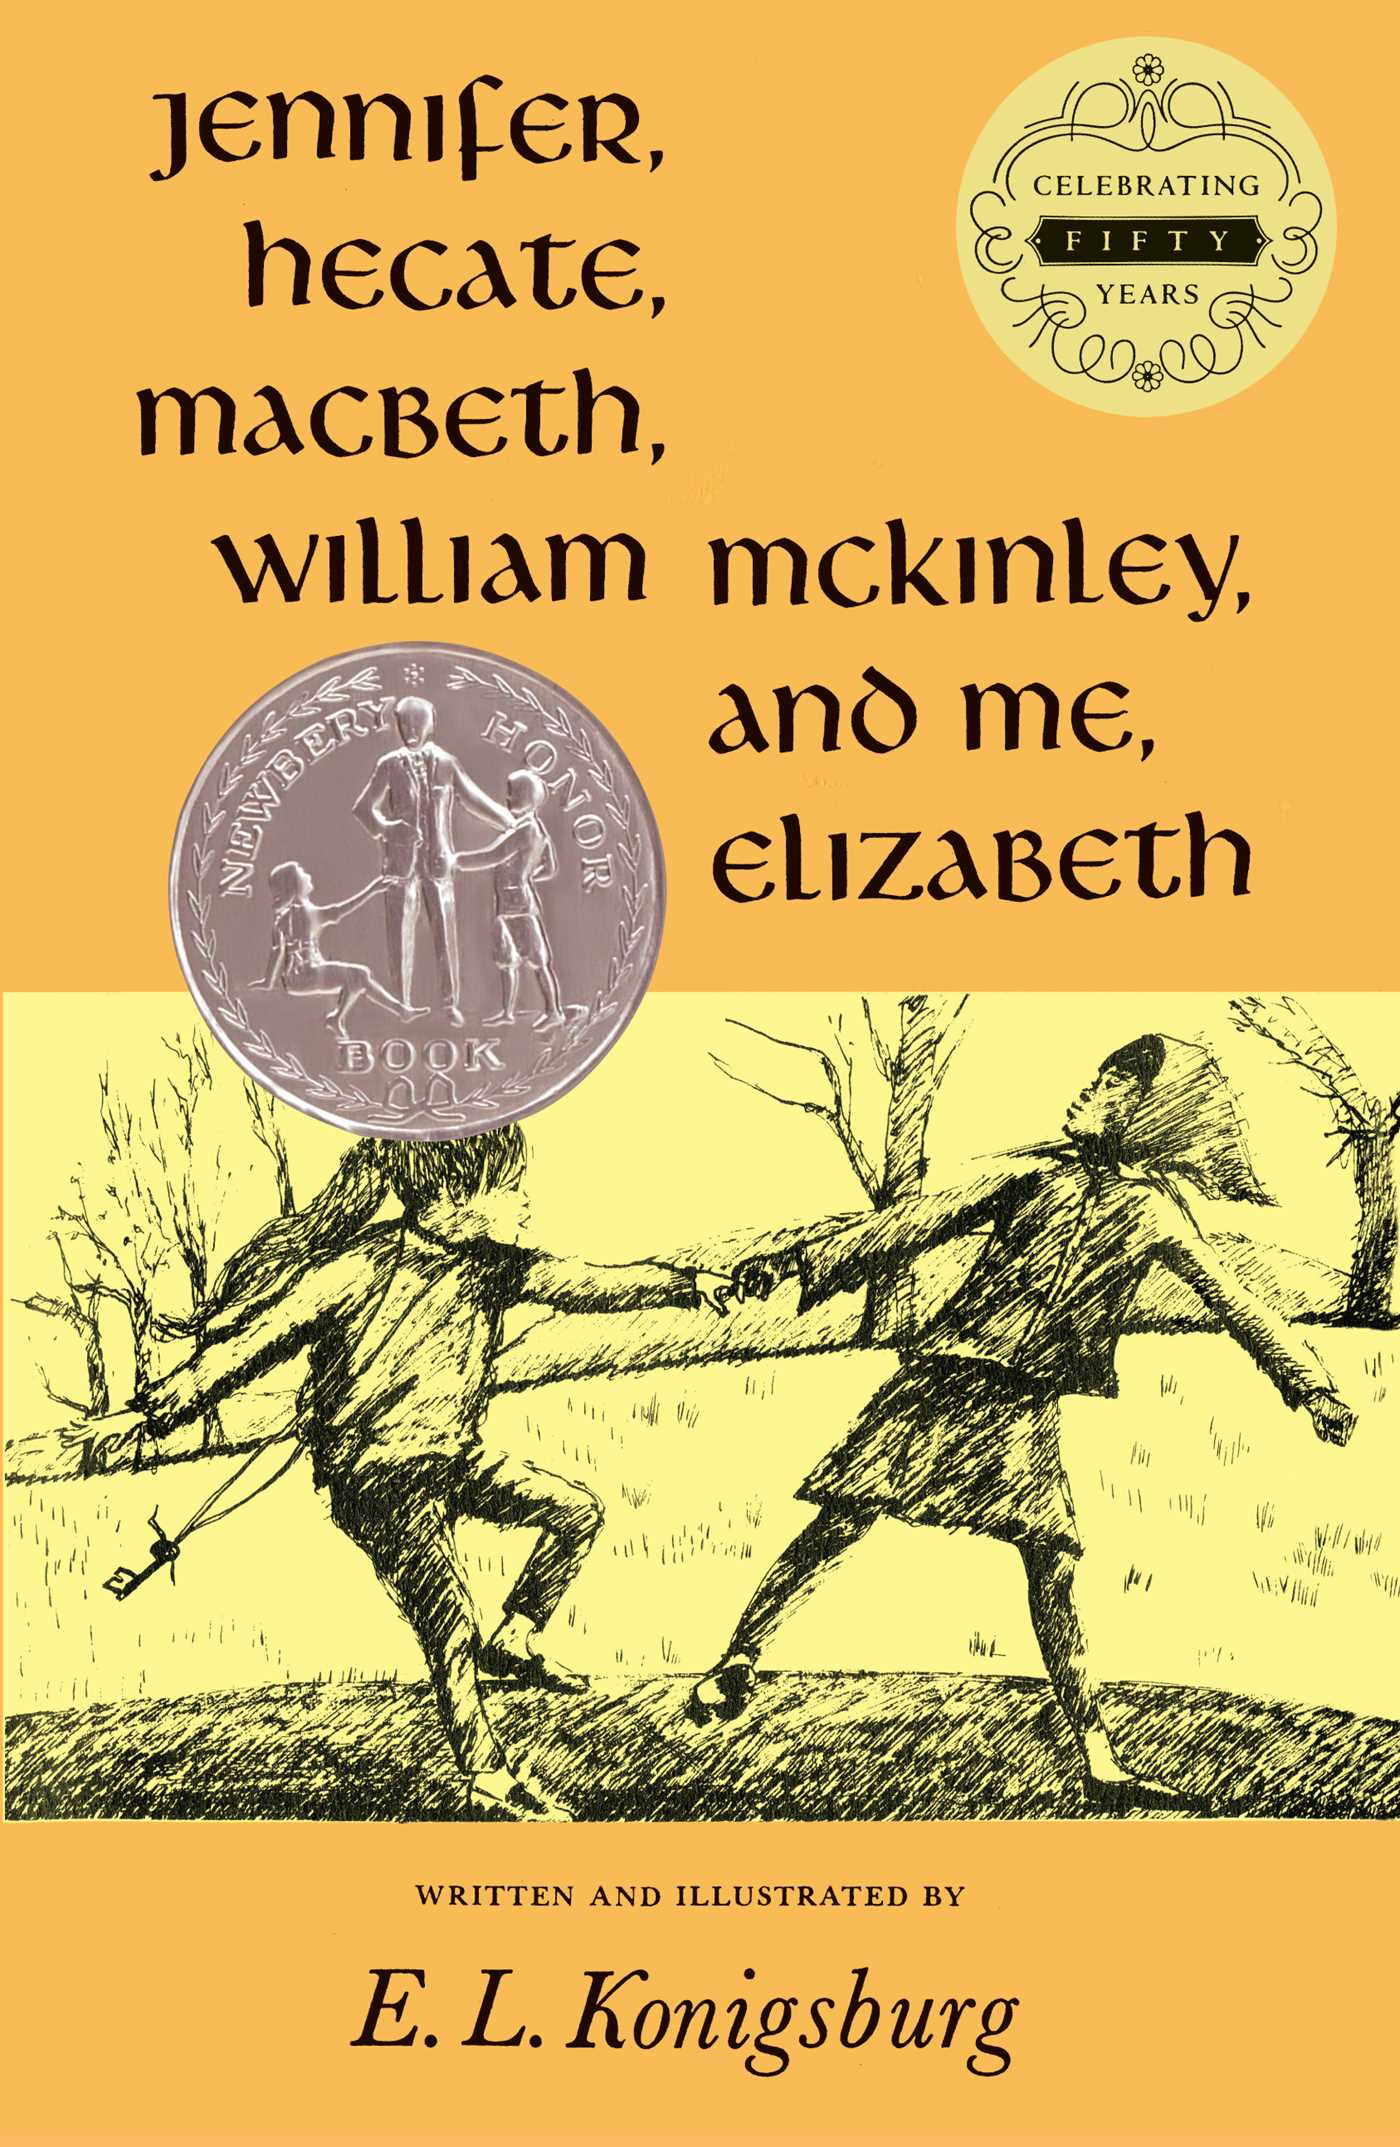 Jennifer hecate macbeth william mckinley and me elizabeth 9780689300073 hr